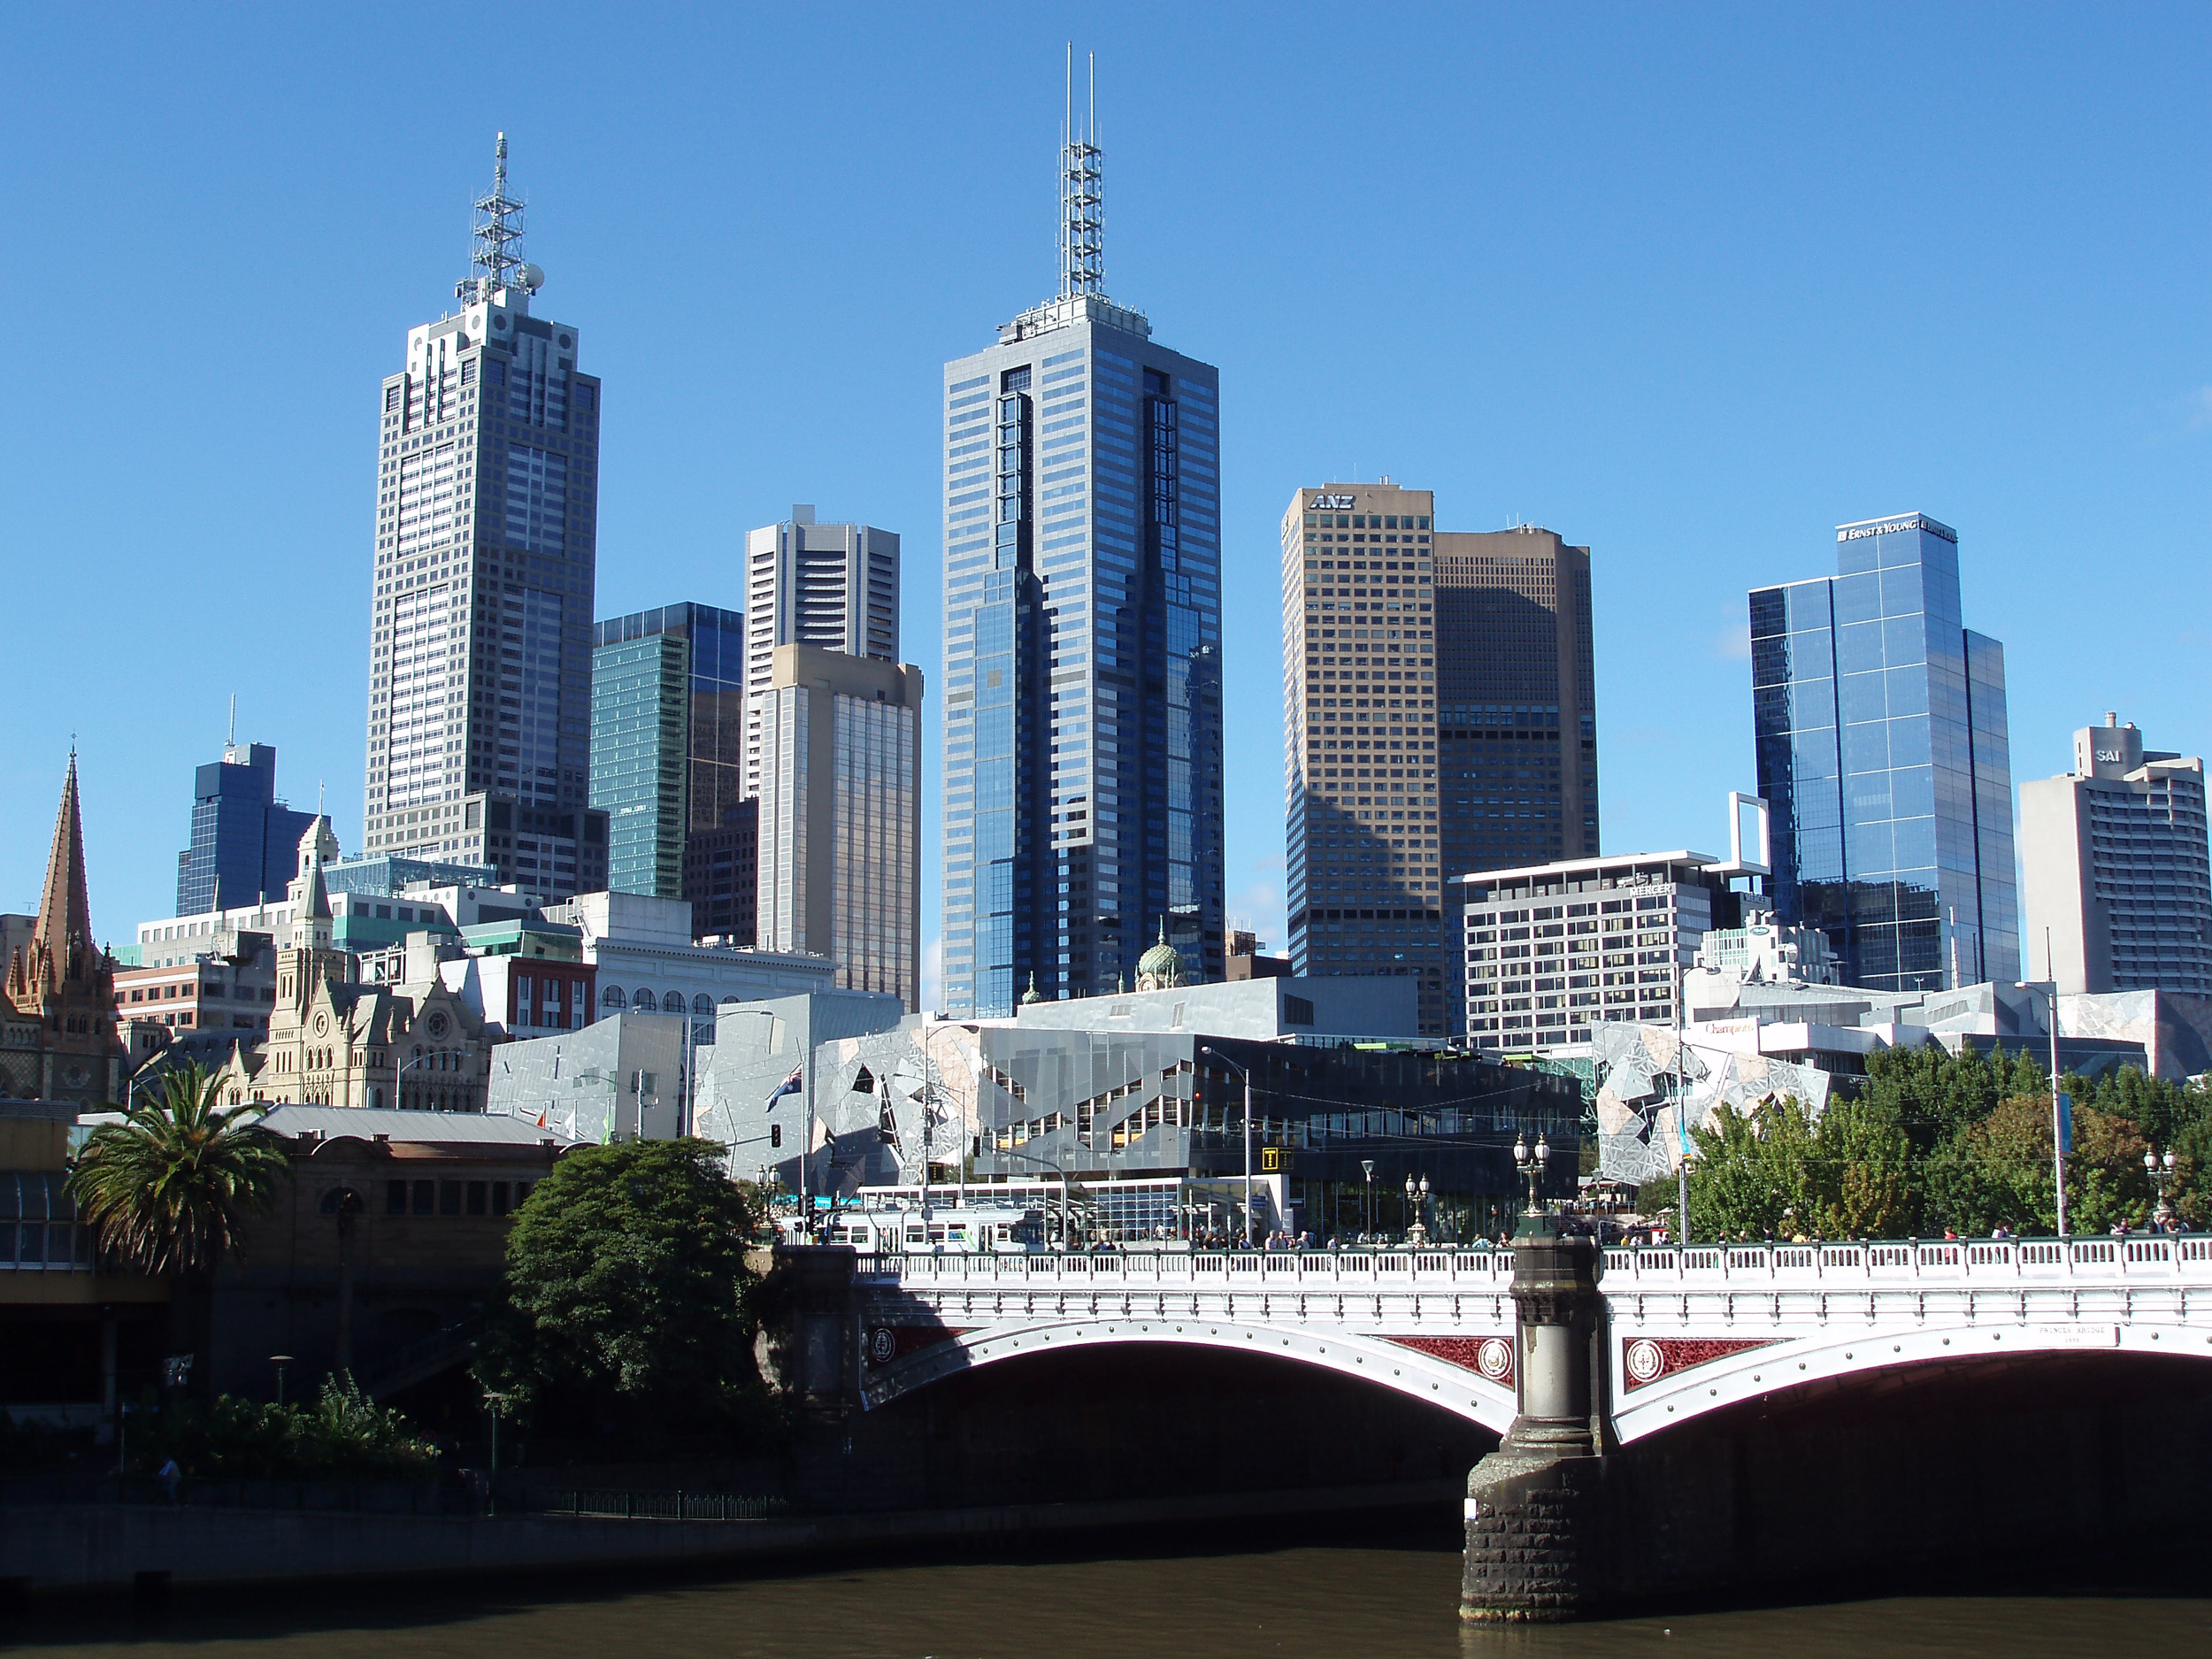 a view of the Princes Bridge and the office towers of downtown melbourne from the southbank of the yarra river